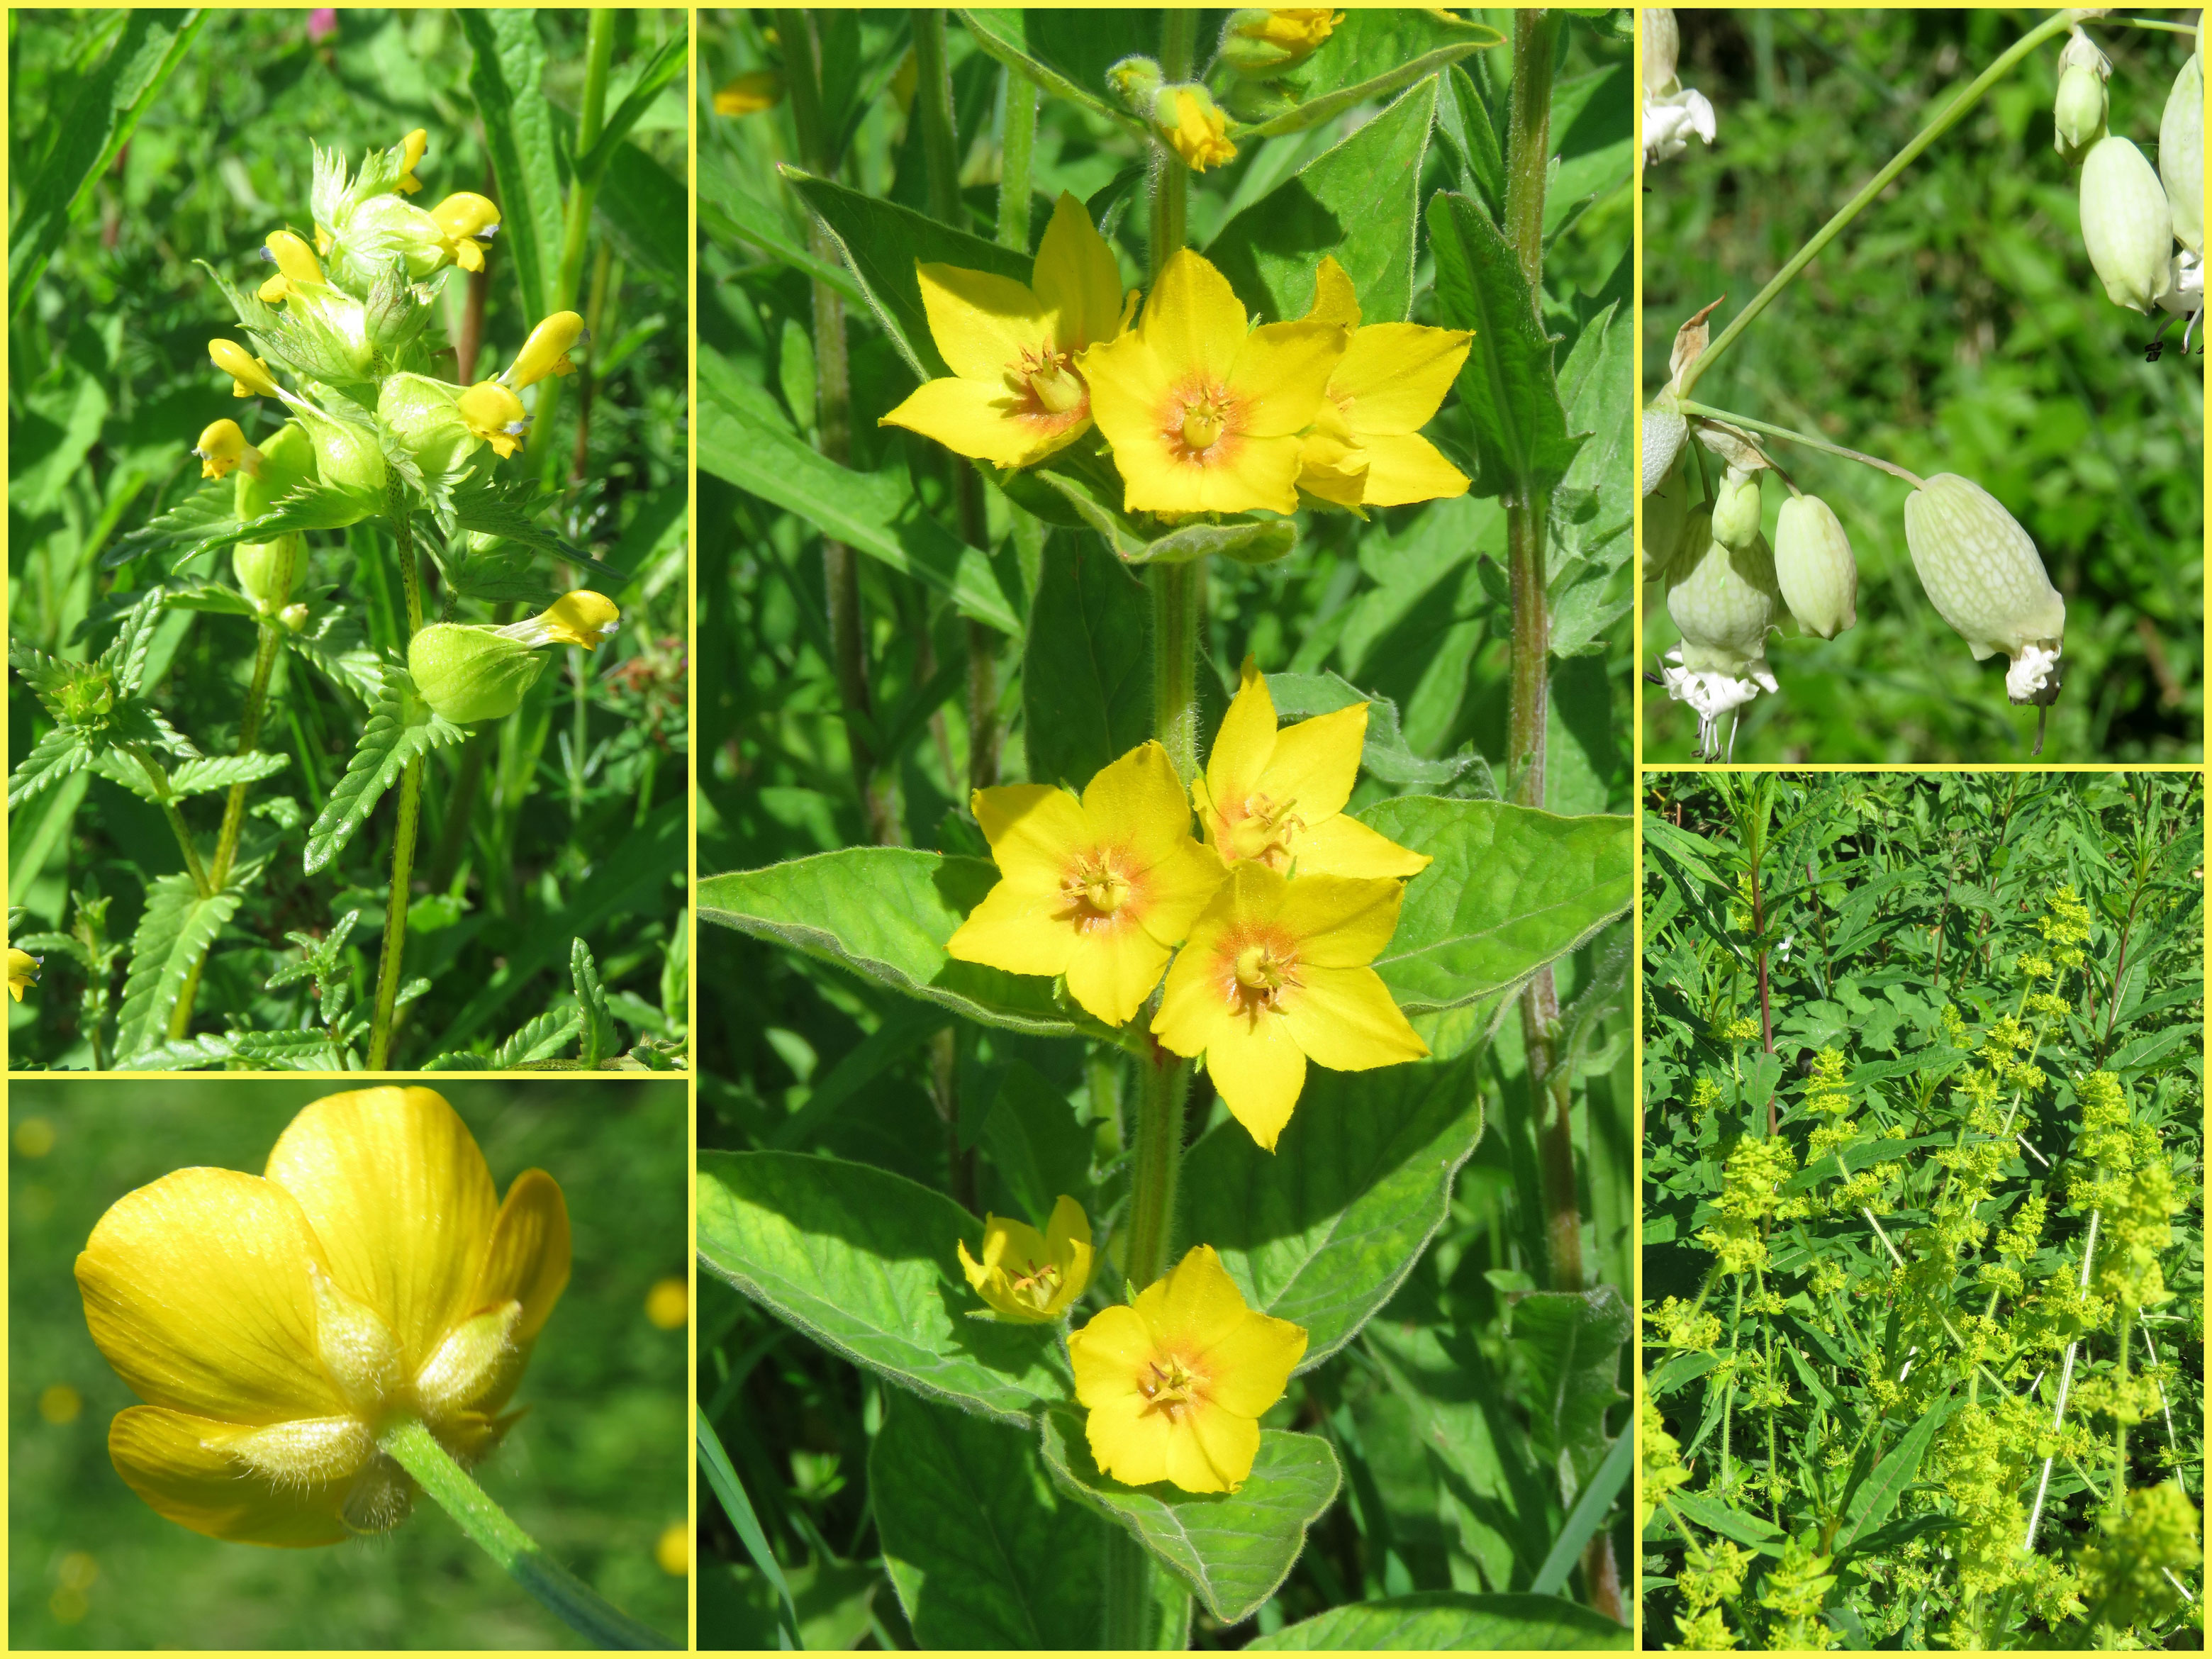 Adur wild flowers 2017 yellow rattle dotted loosestrife bladder campion buttercup ladys bedstraw downs link cyclepath old shoreham to upper beeding mightylinksfo